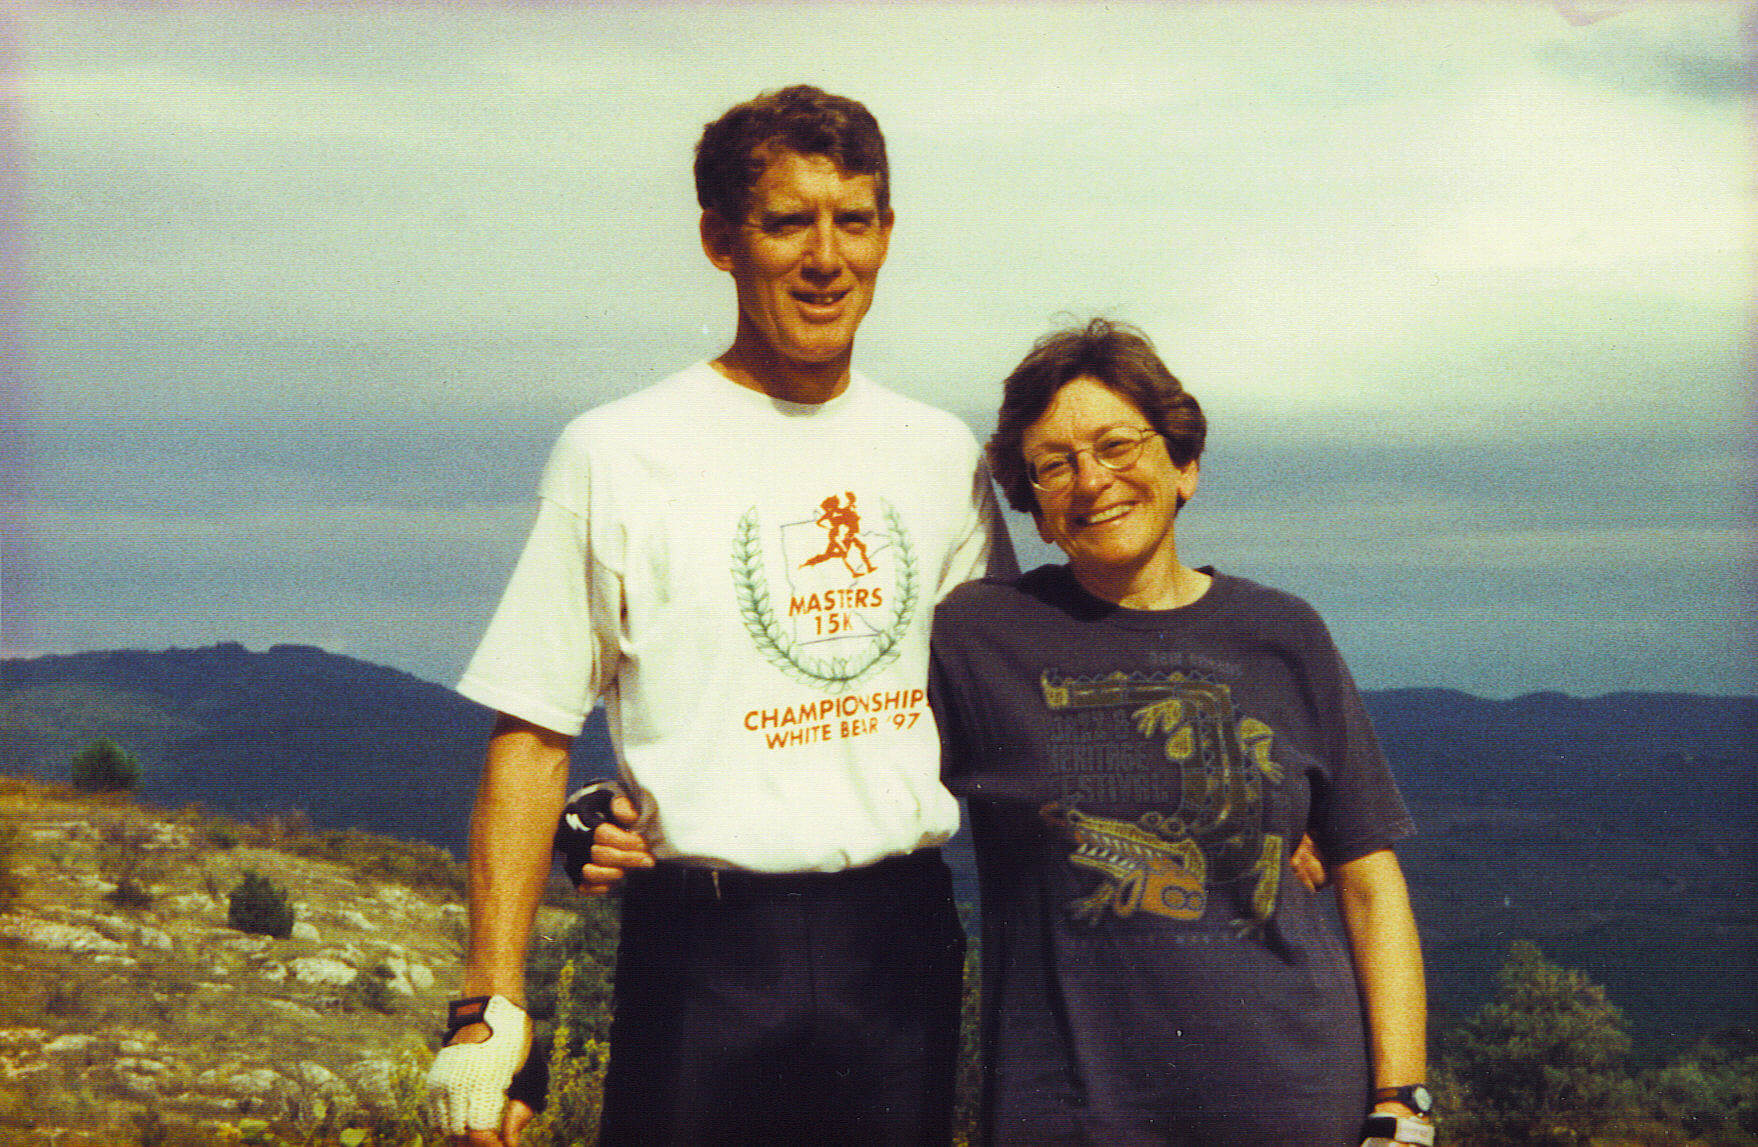 Couple on top of a mountain smiling